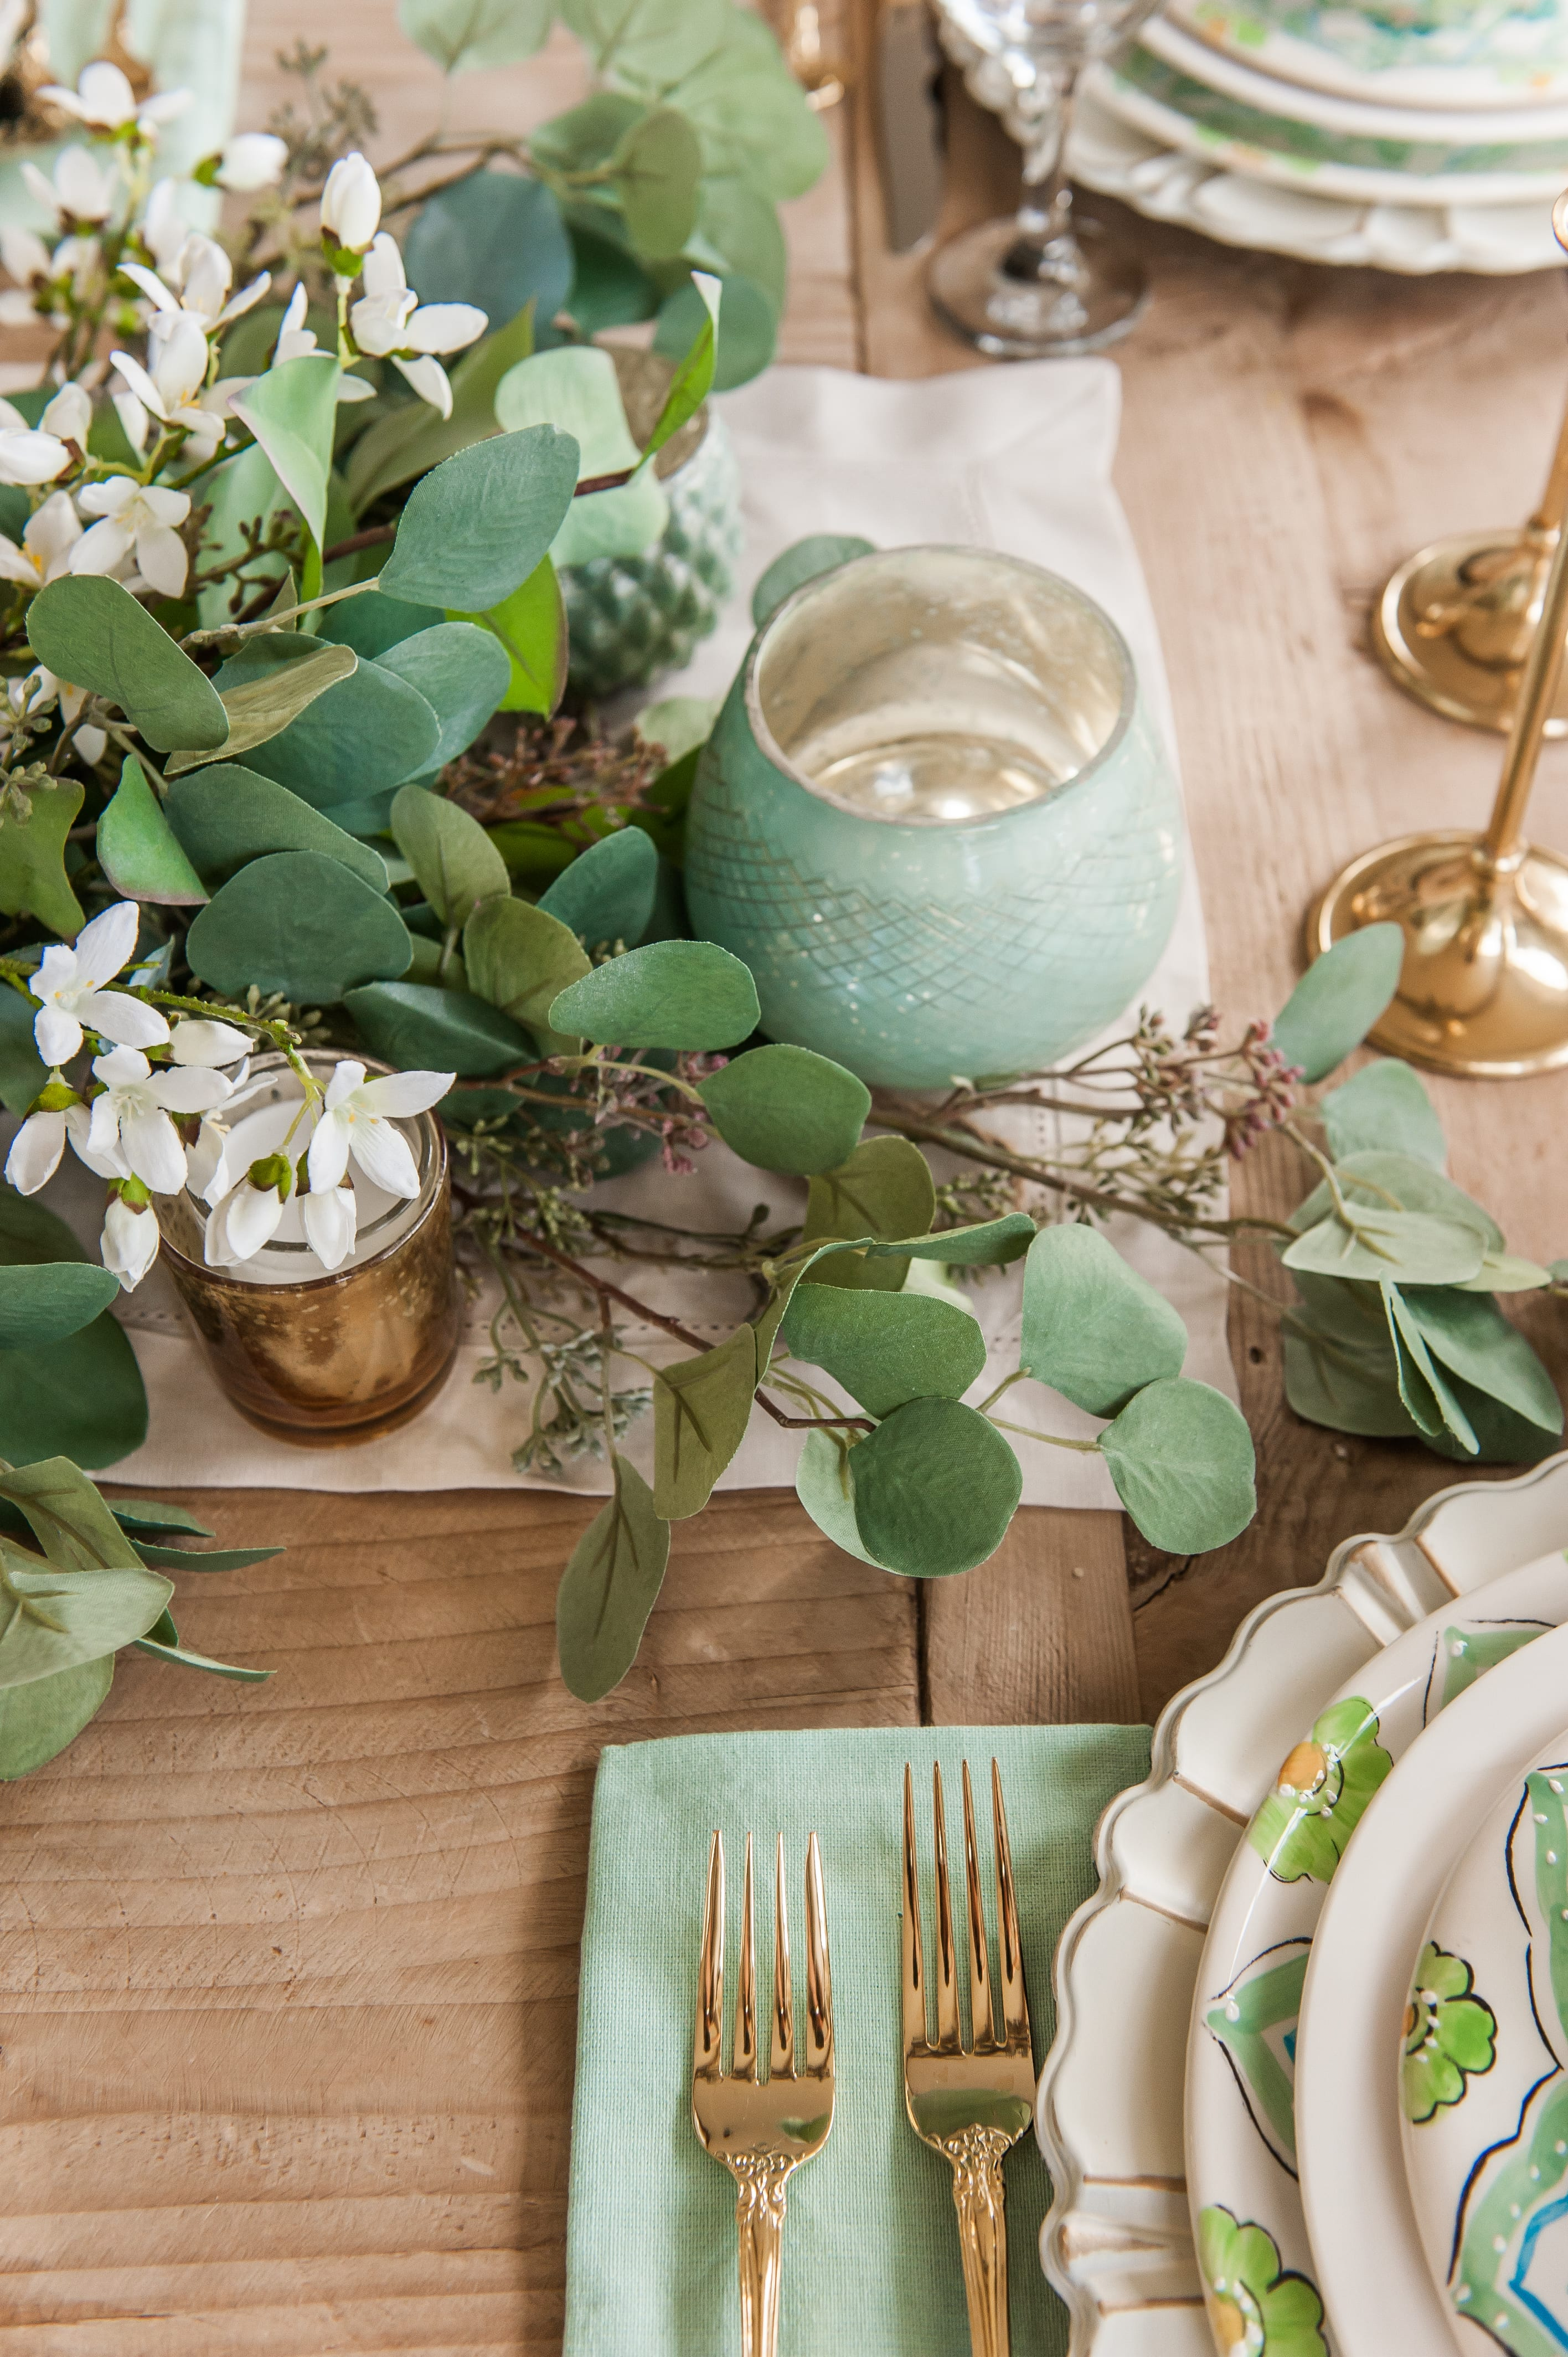 Tablescape spring Tablescapes st. patricks day table decor blue green and white table setting dinnerware easter tablescape easter dinner table dining room table setting place setting table decor idea centerpiece garland faux flowers